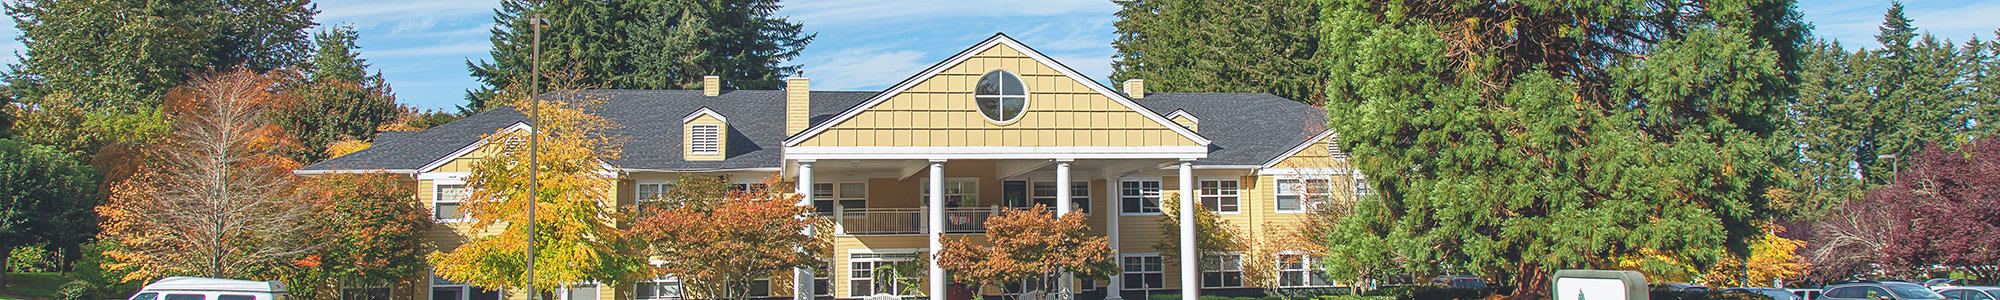 News and events at The Sequoia Assisted Living Community